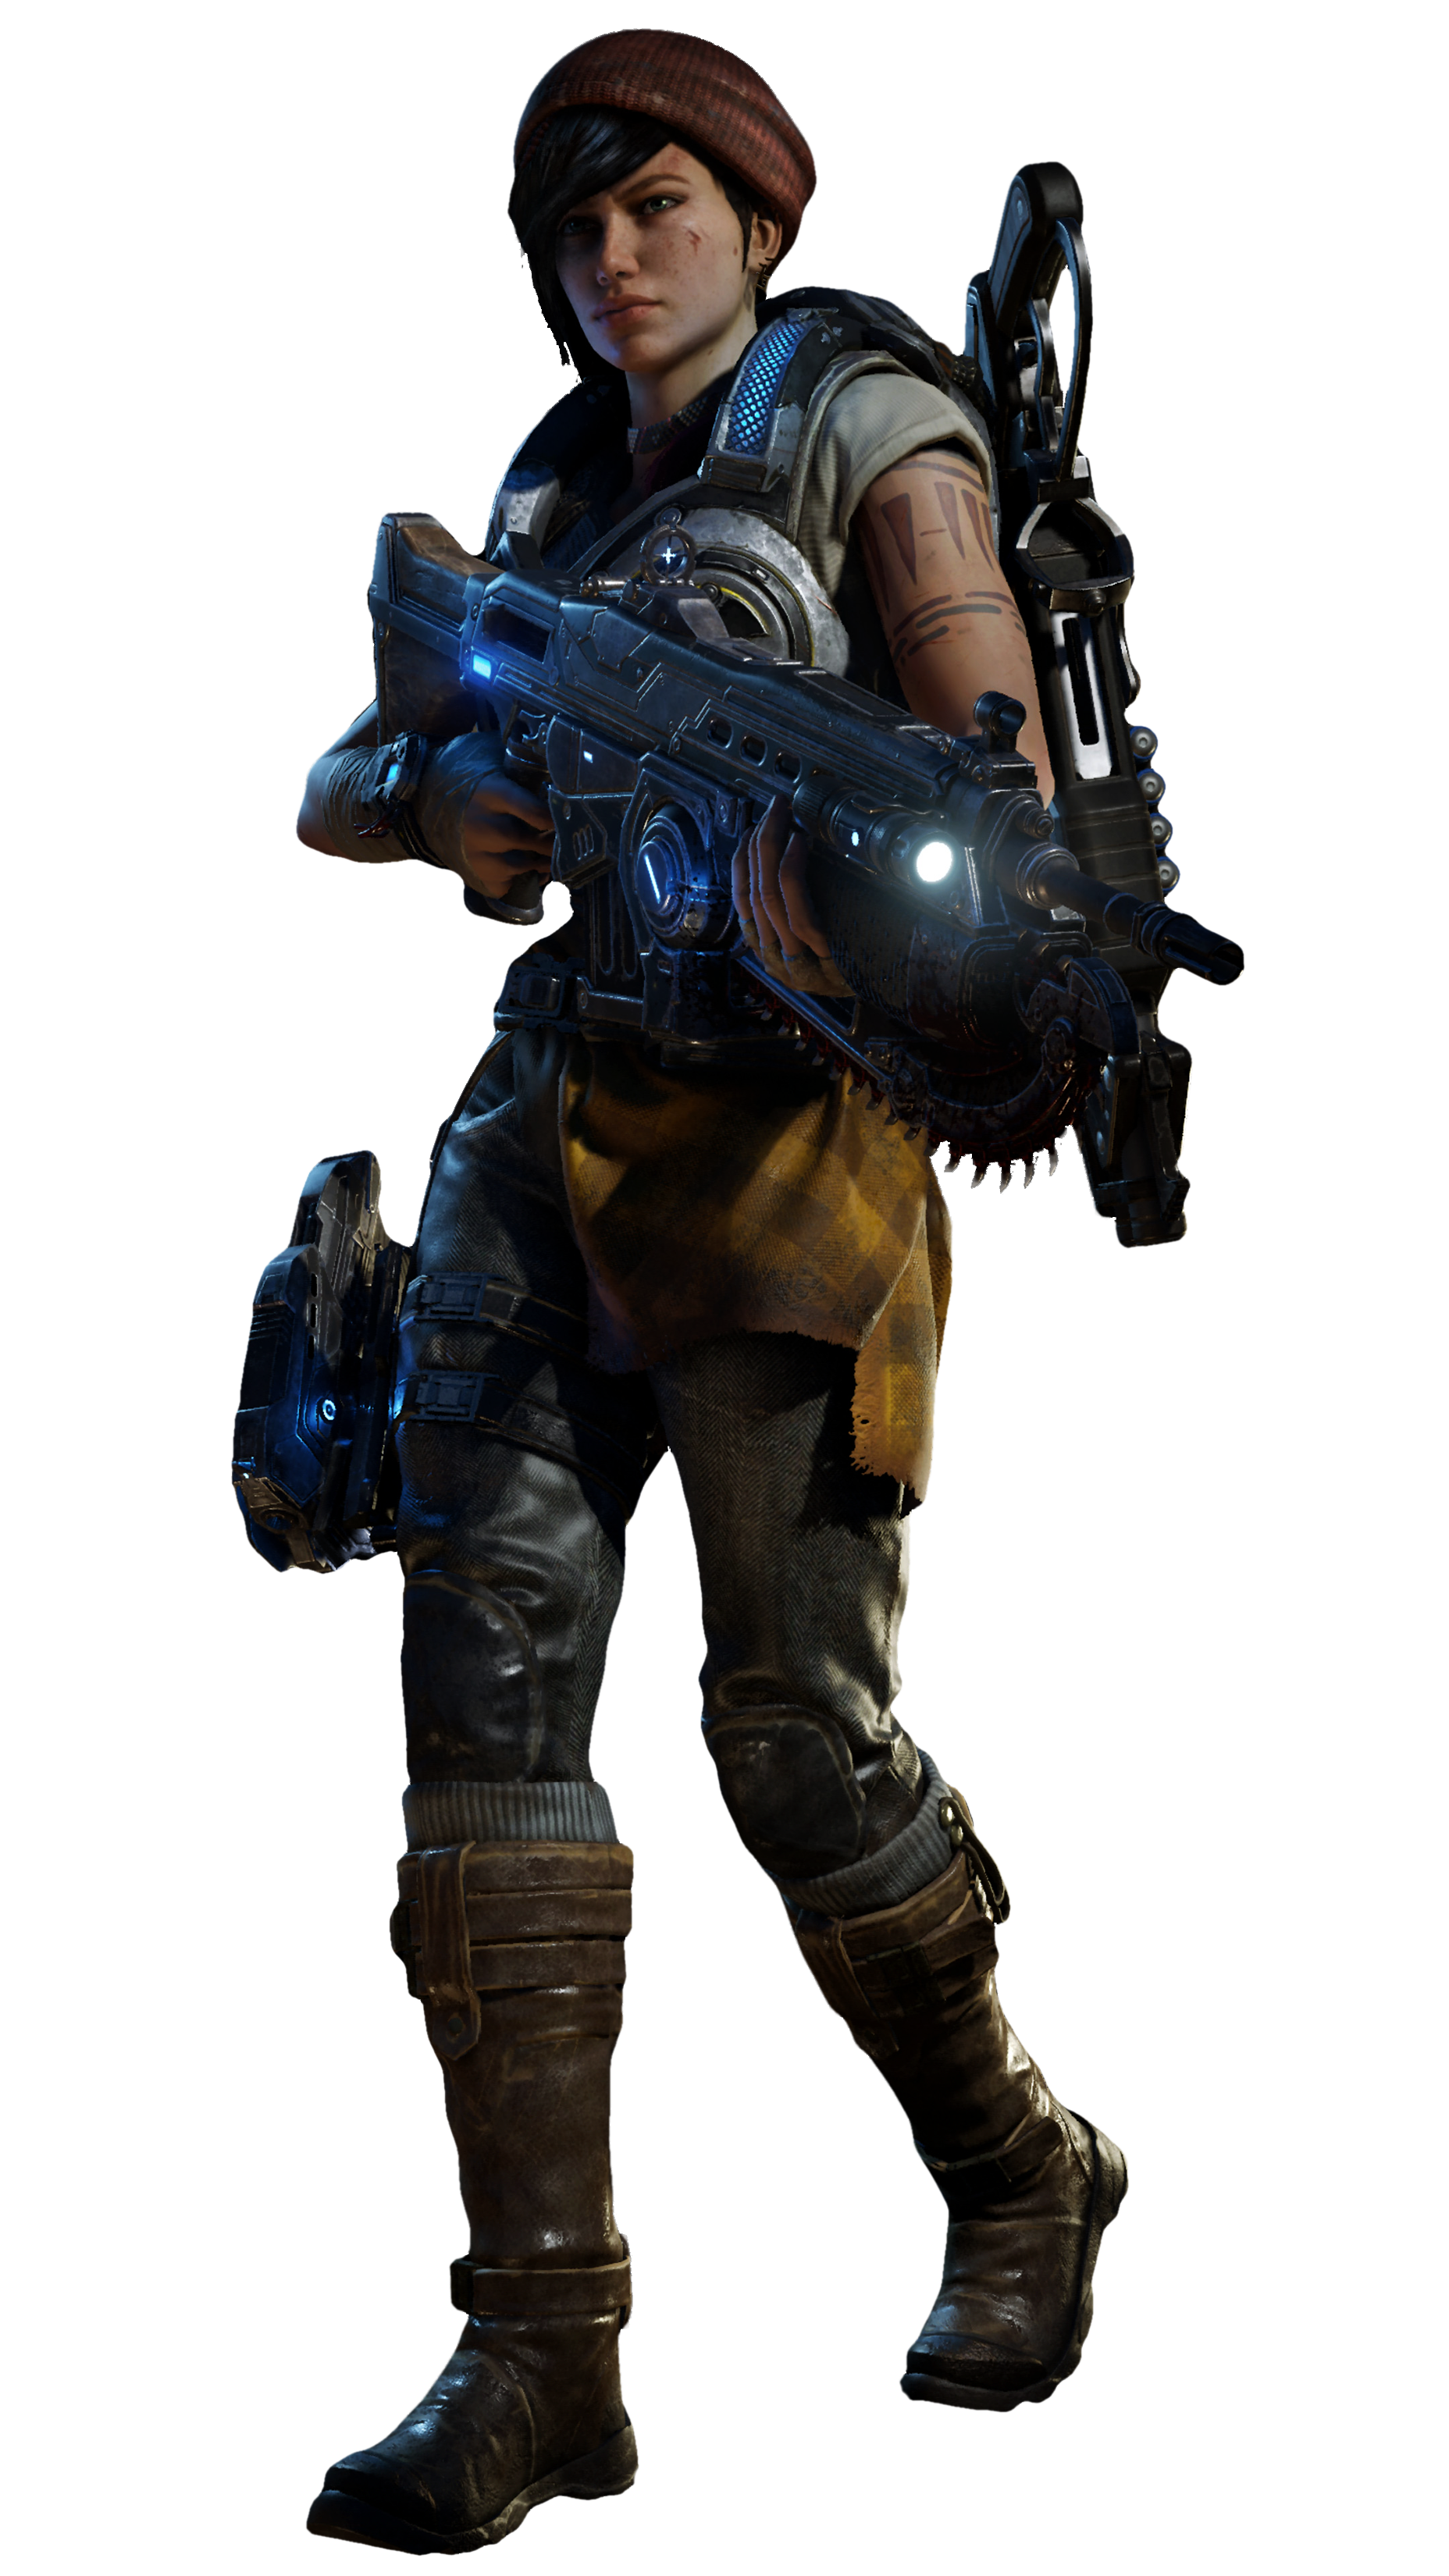 Gears Of War PNG Transparent Gears Of War.PNG Images..